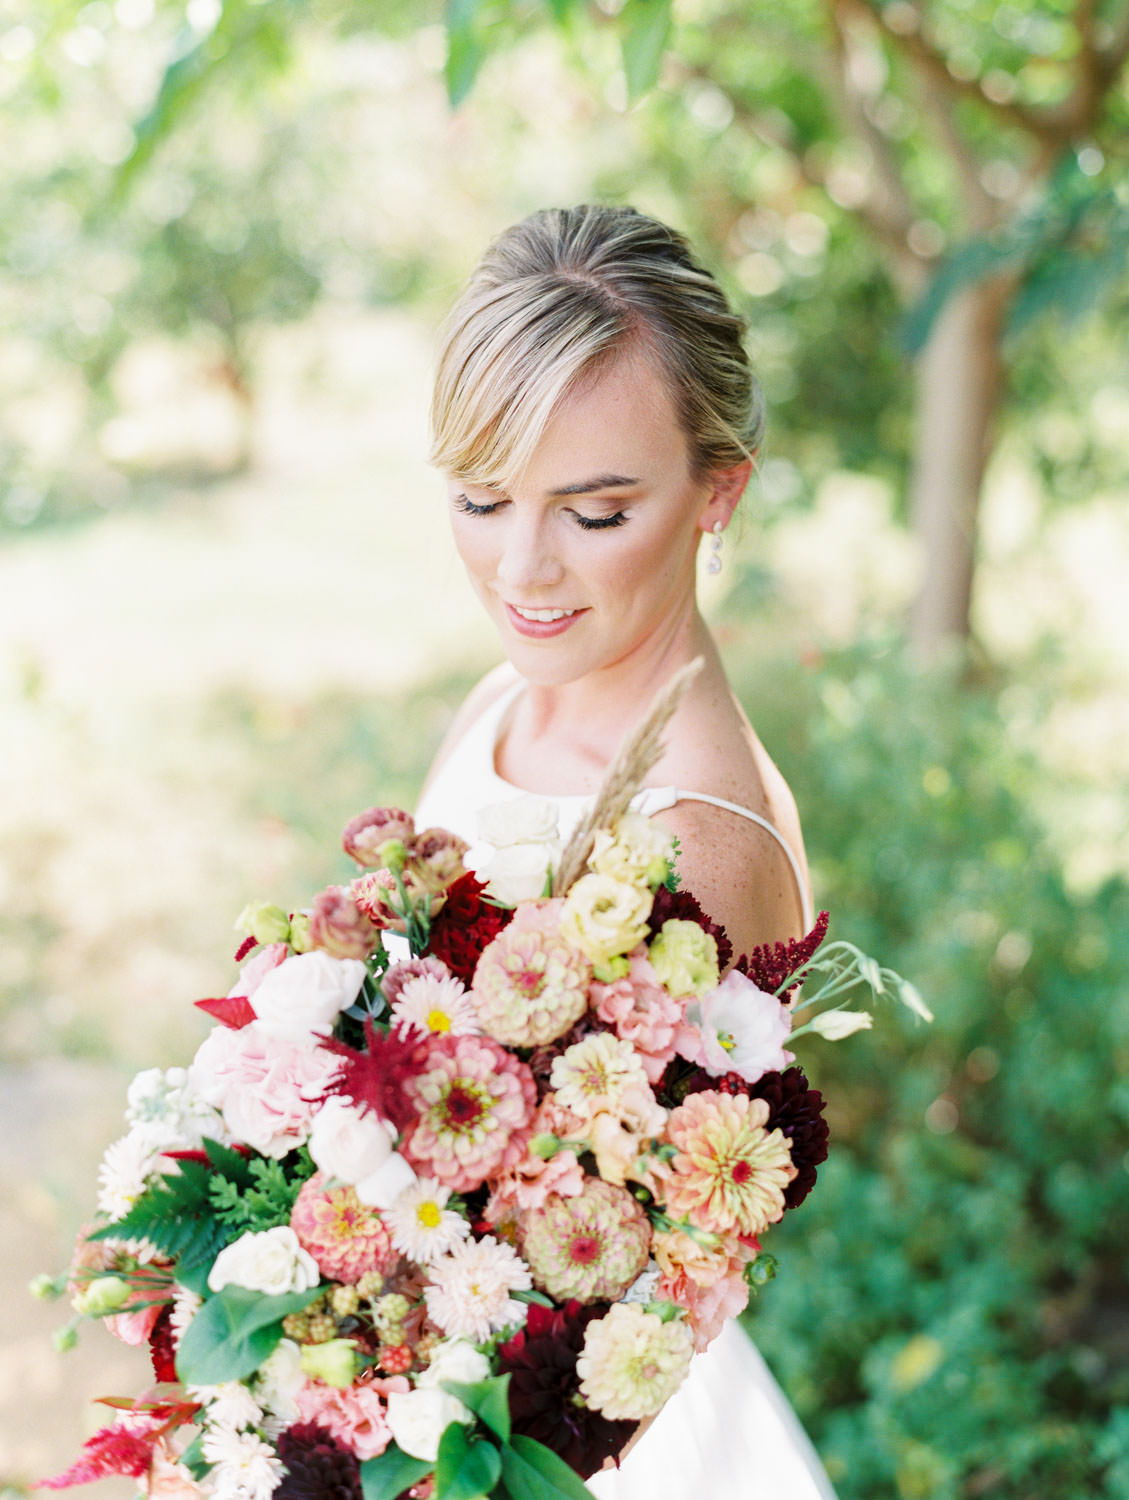 Bride in a classic Mikaella Bridal gown smiling at her bridal bouquet with ivory, peach, wine, blush flowers and mauve, wine, and blush ribbons. Martha Stewart Weddings by film photographer Cavin Elizabeth Photography